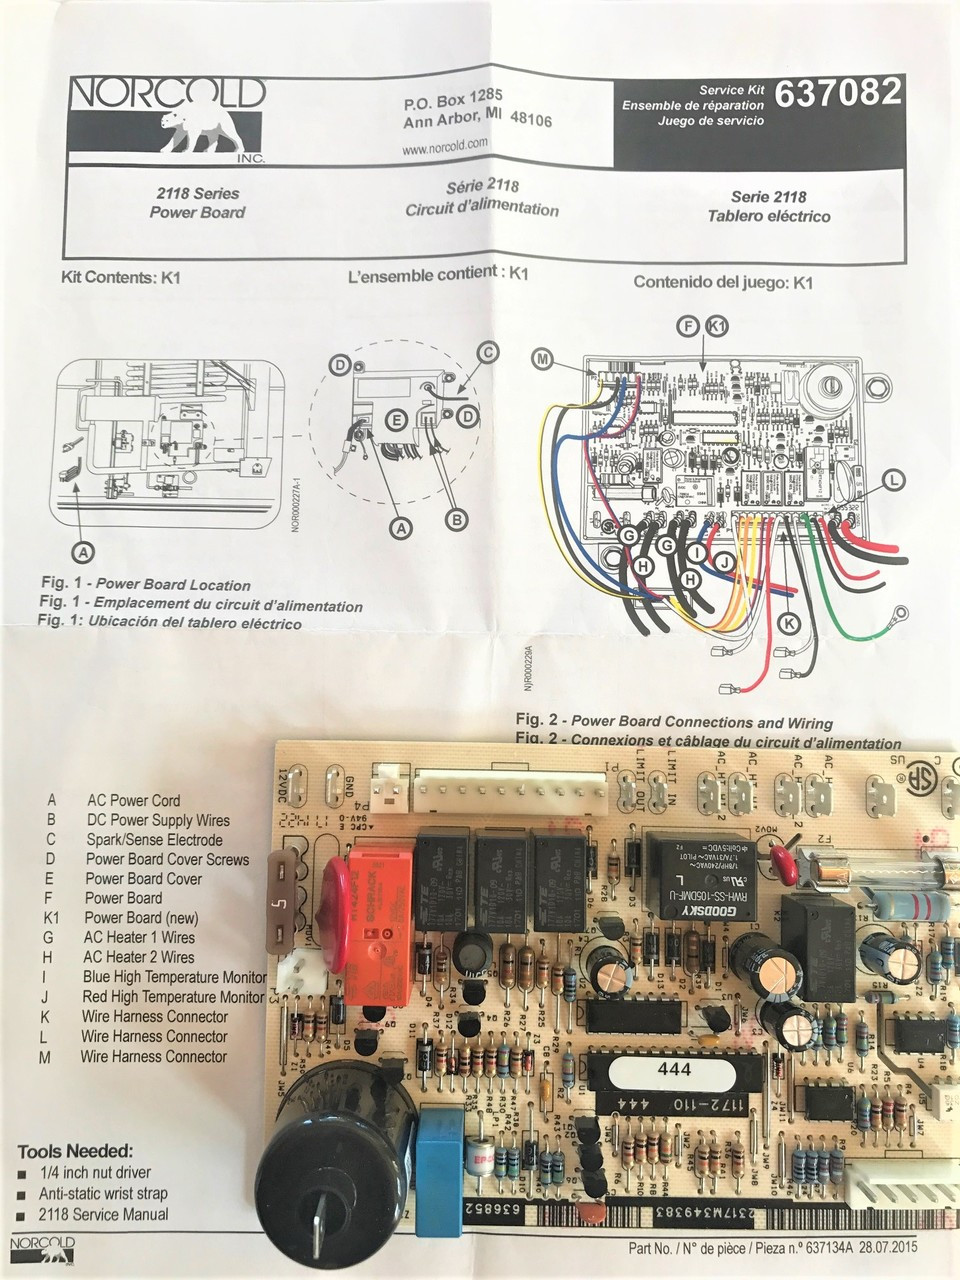 IMG_0059_2__66296.1504279223.1280.1280?c=2 norcold model n621 rv refrigerator wiring diagram norcold 1200 norcold 1200 wiring diagram at edmiracle.co